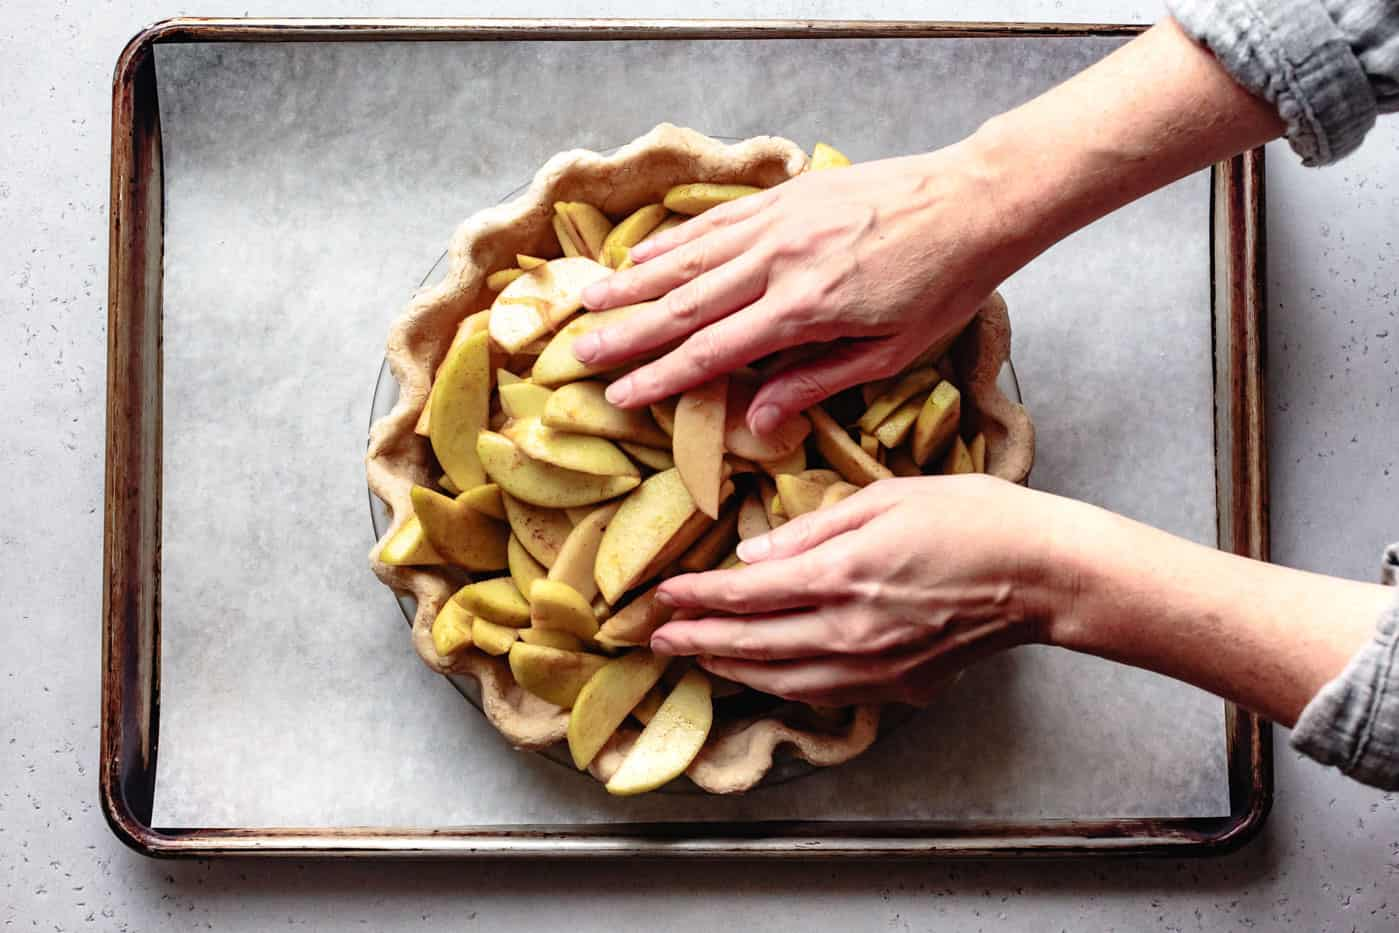 packing apples into crust for paleo apple pie recipe